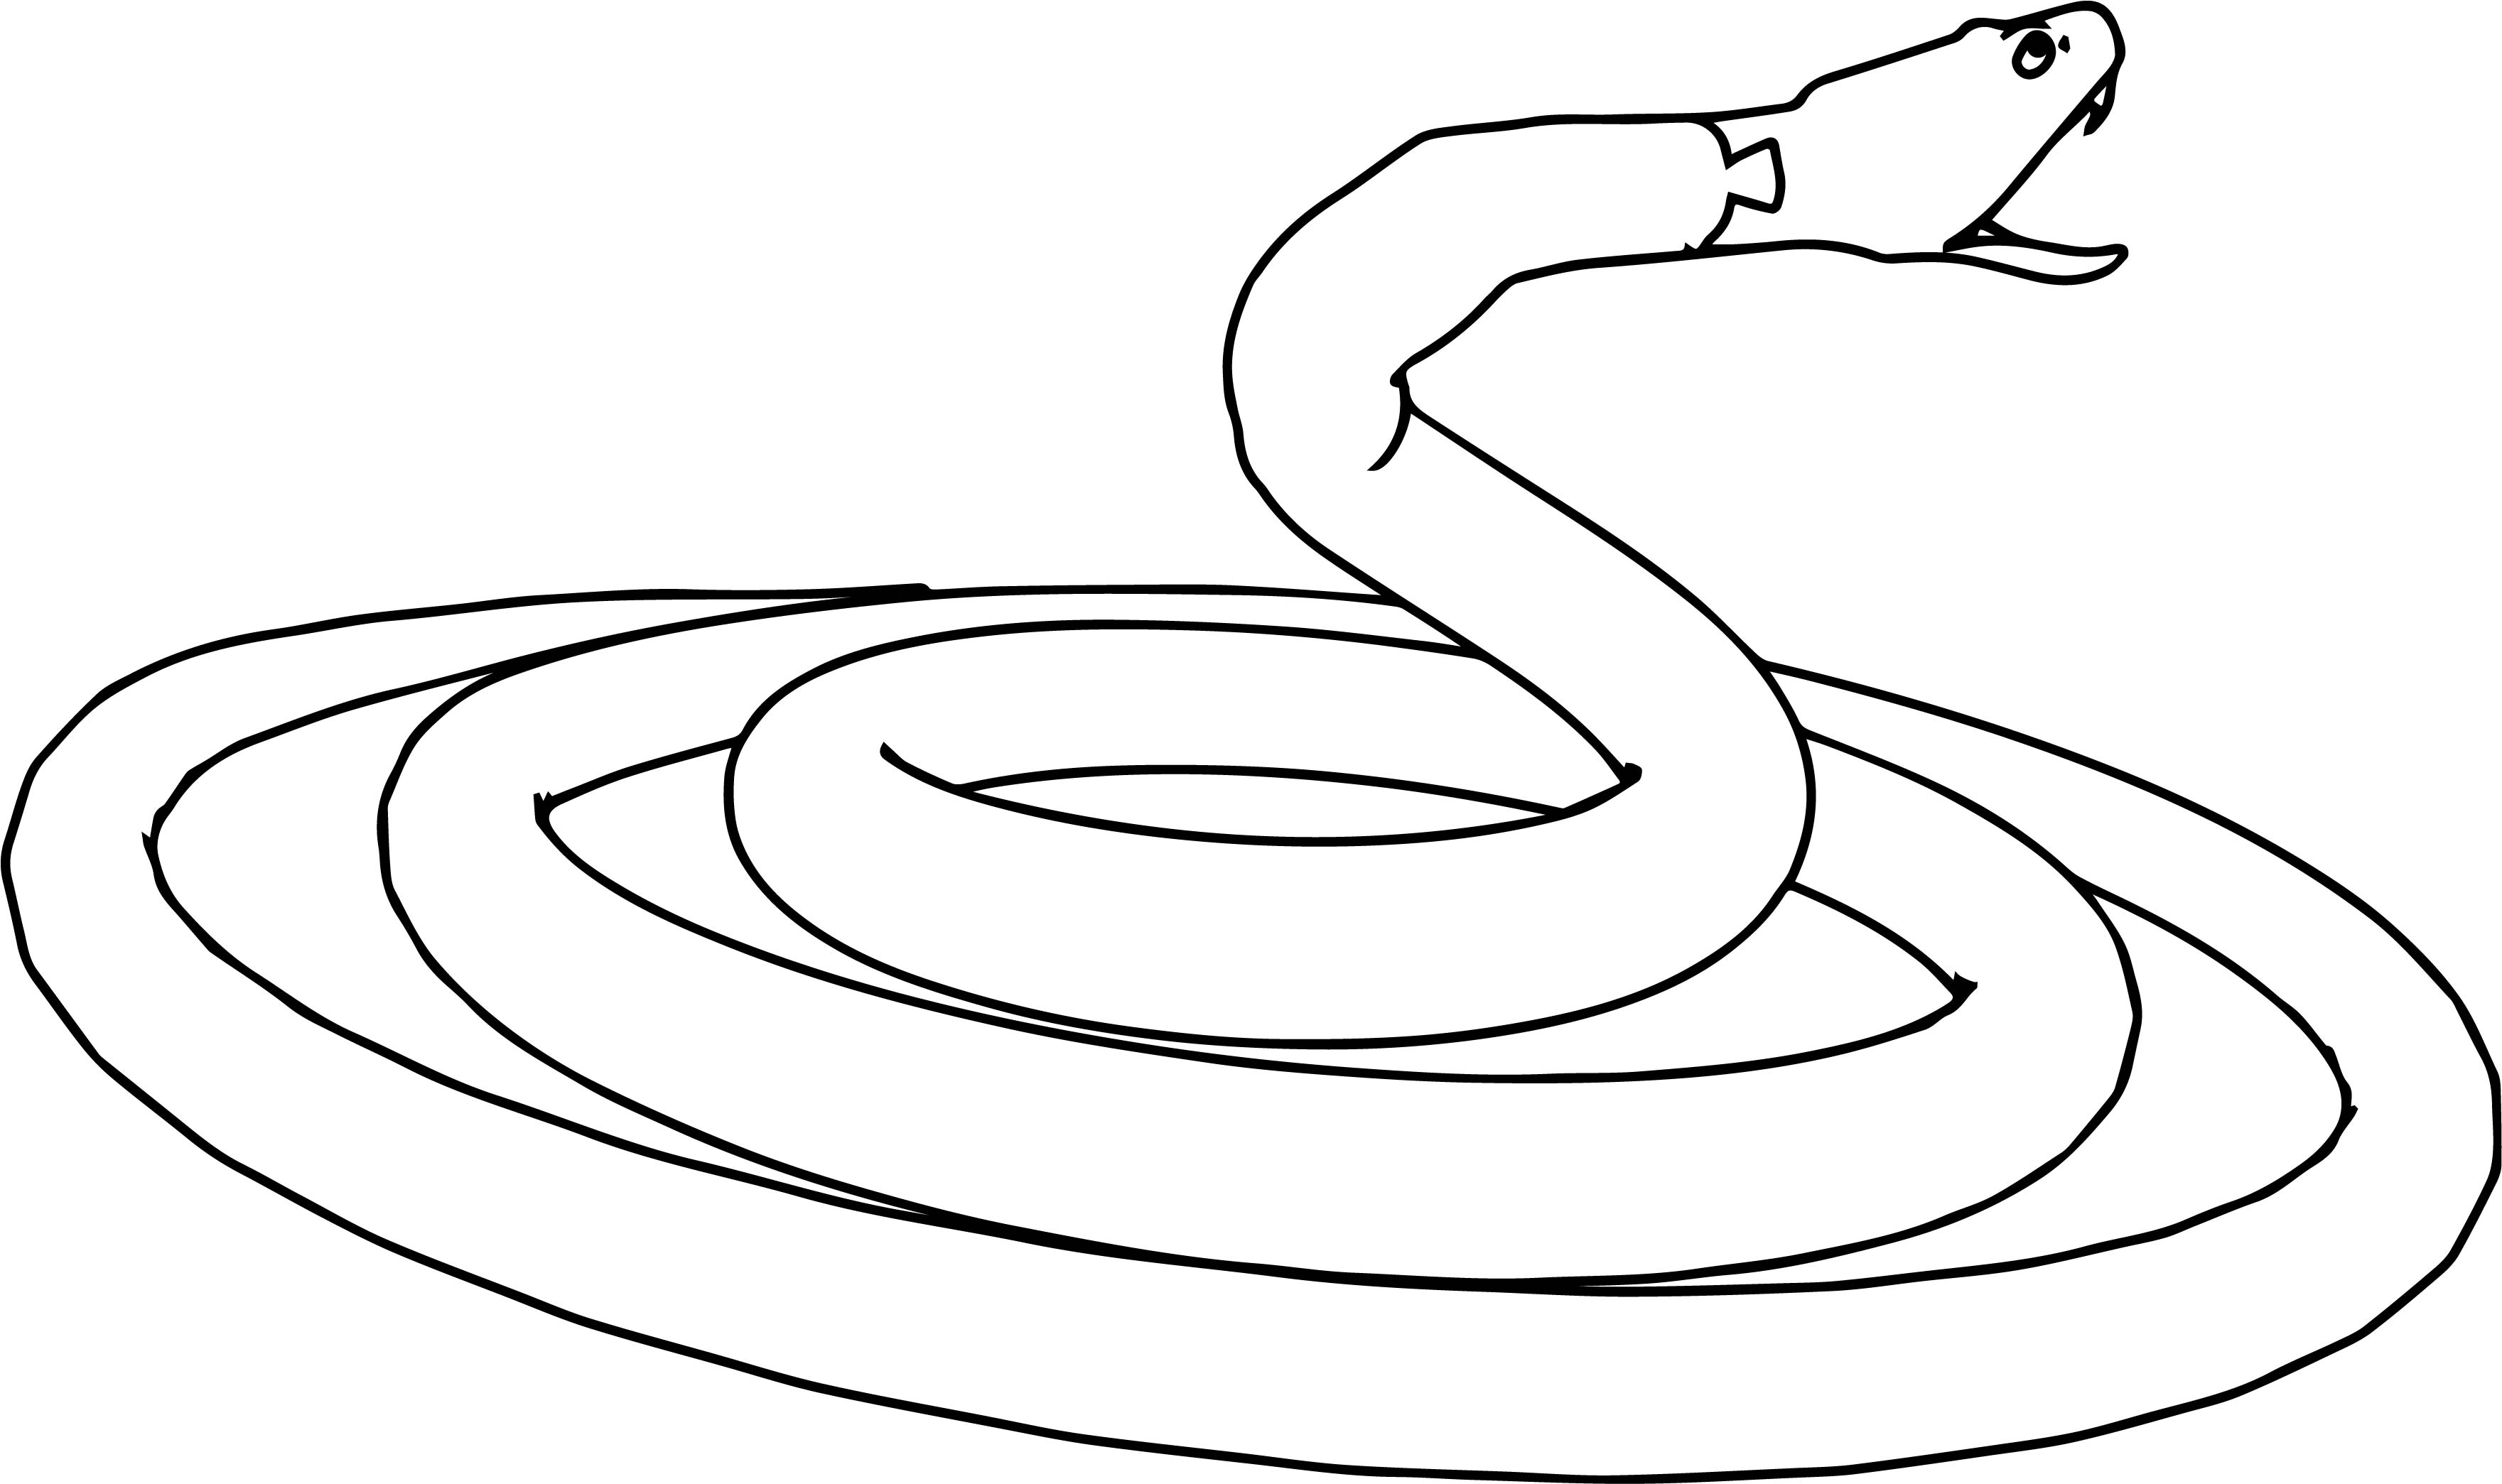 angry snake coloring page wecoloringpage